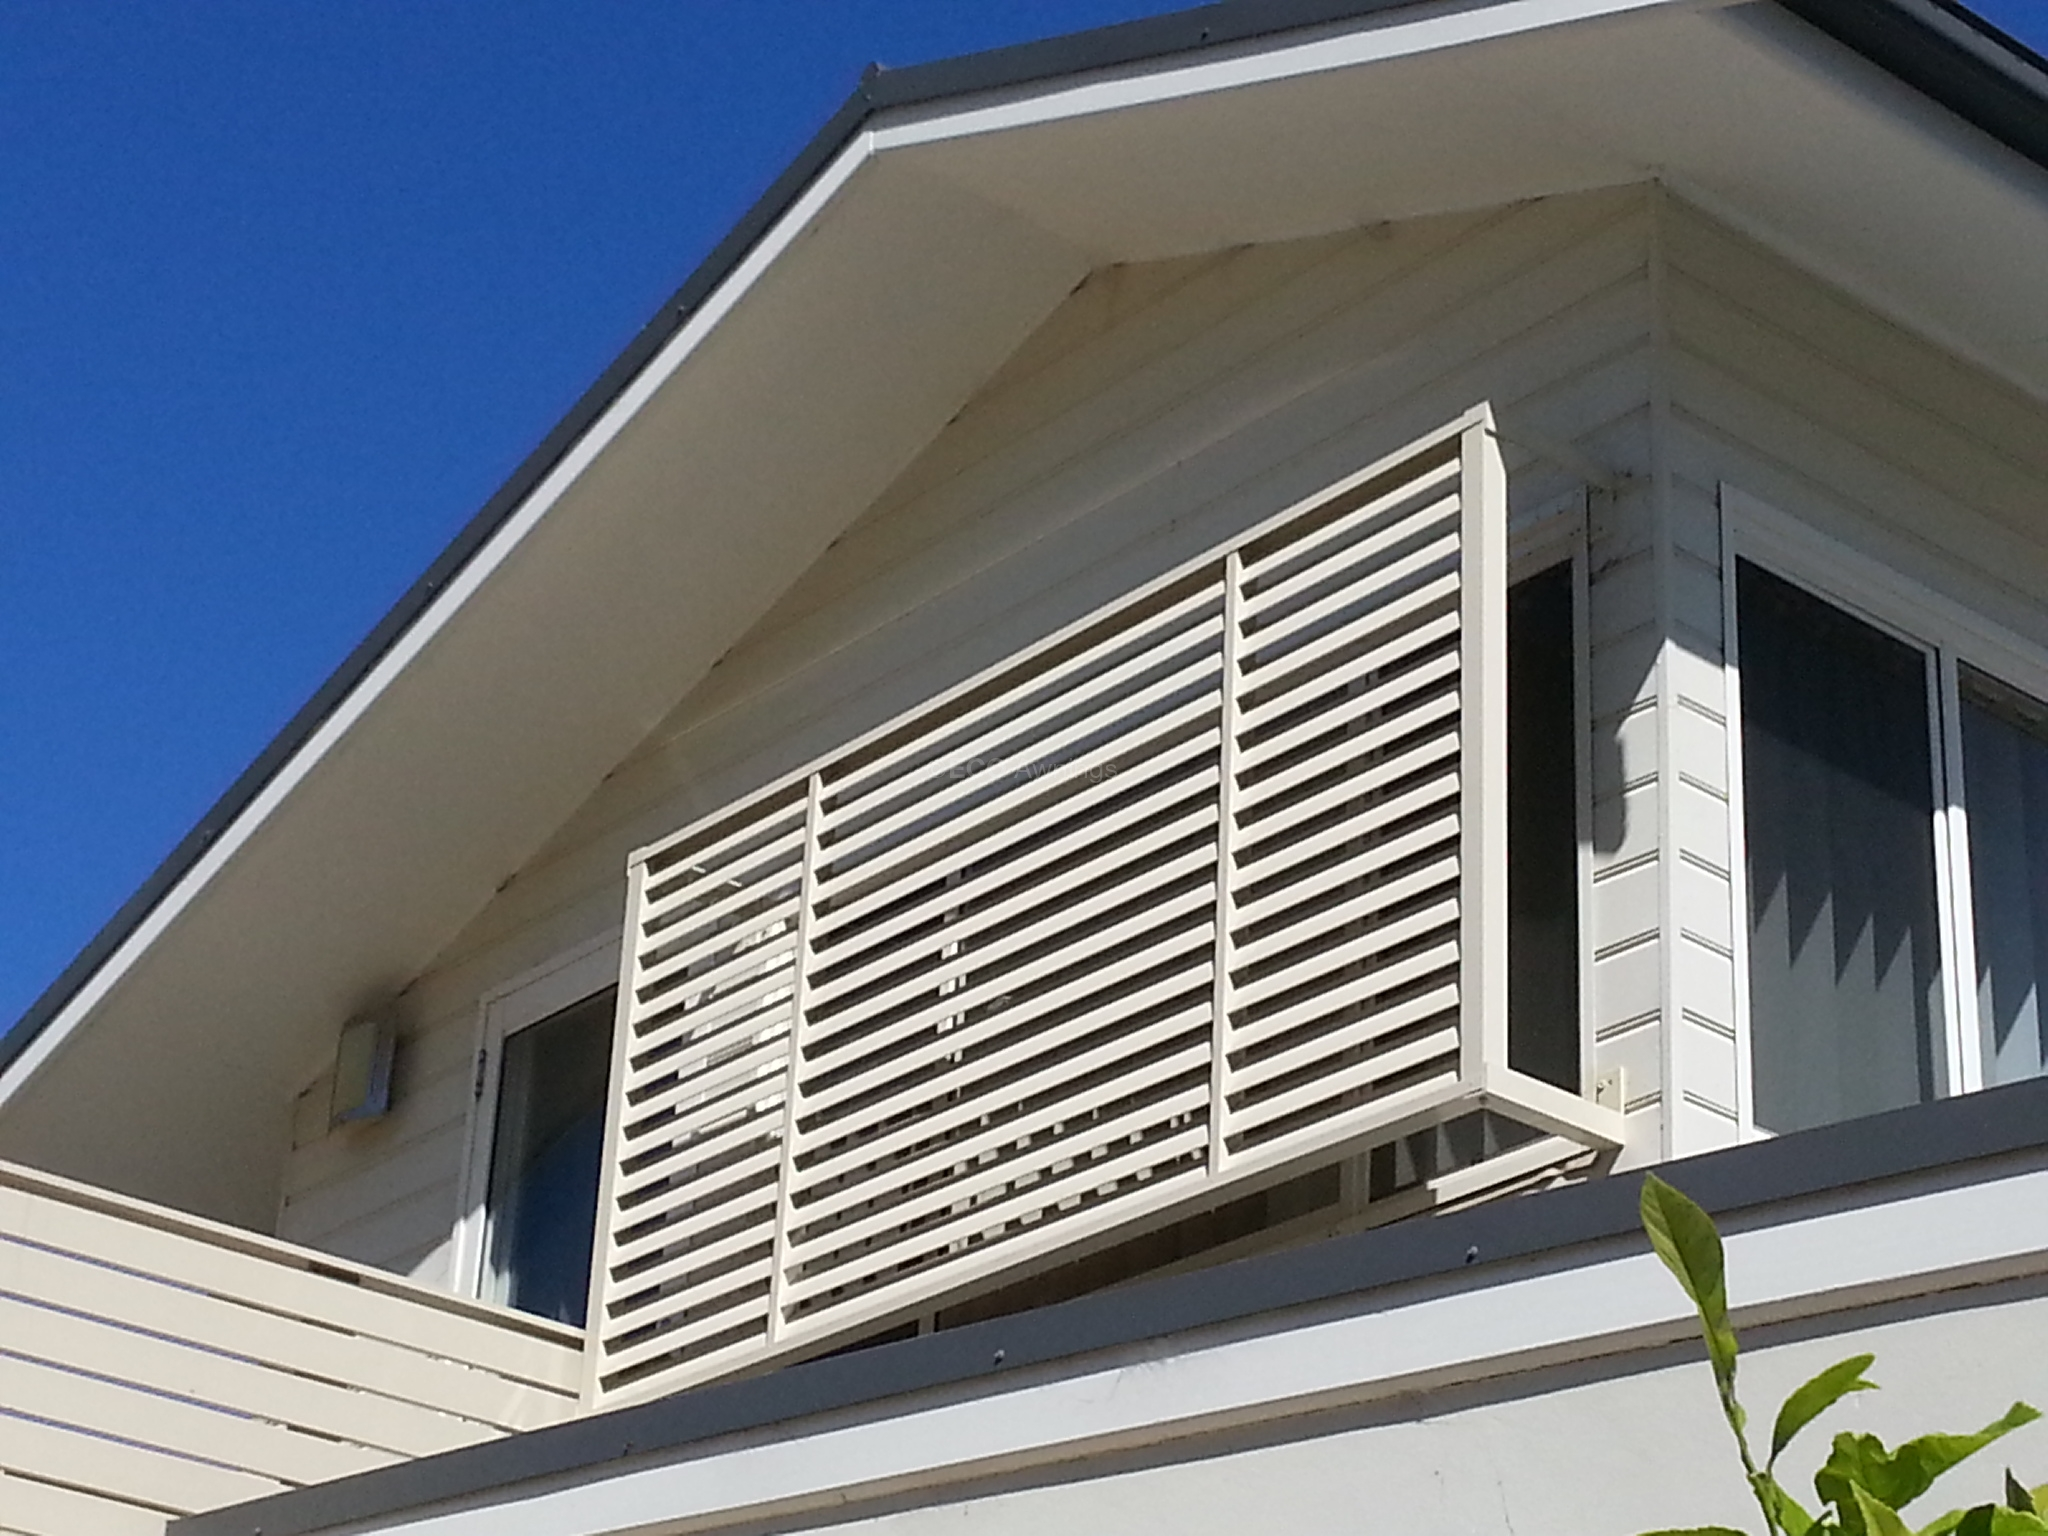 Privacy Screen Louvers With Standoff Legs Eco Awnings